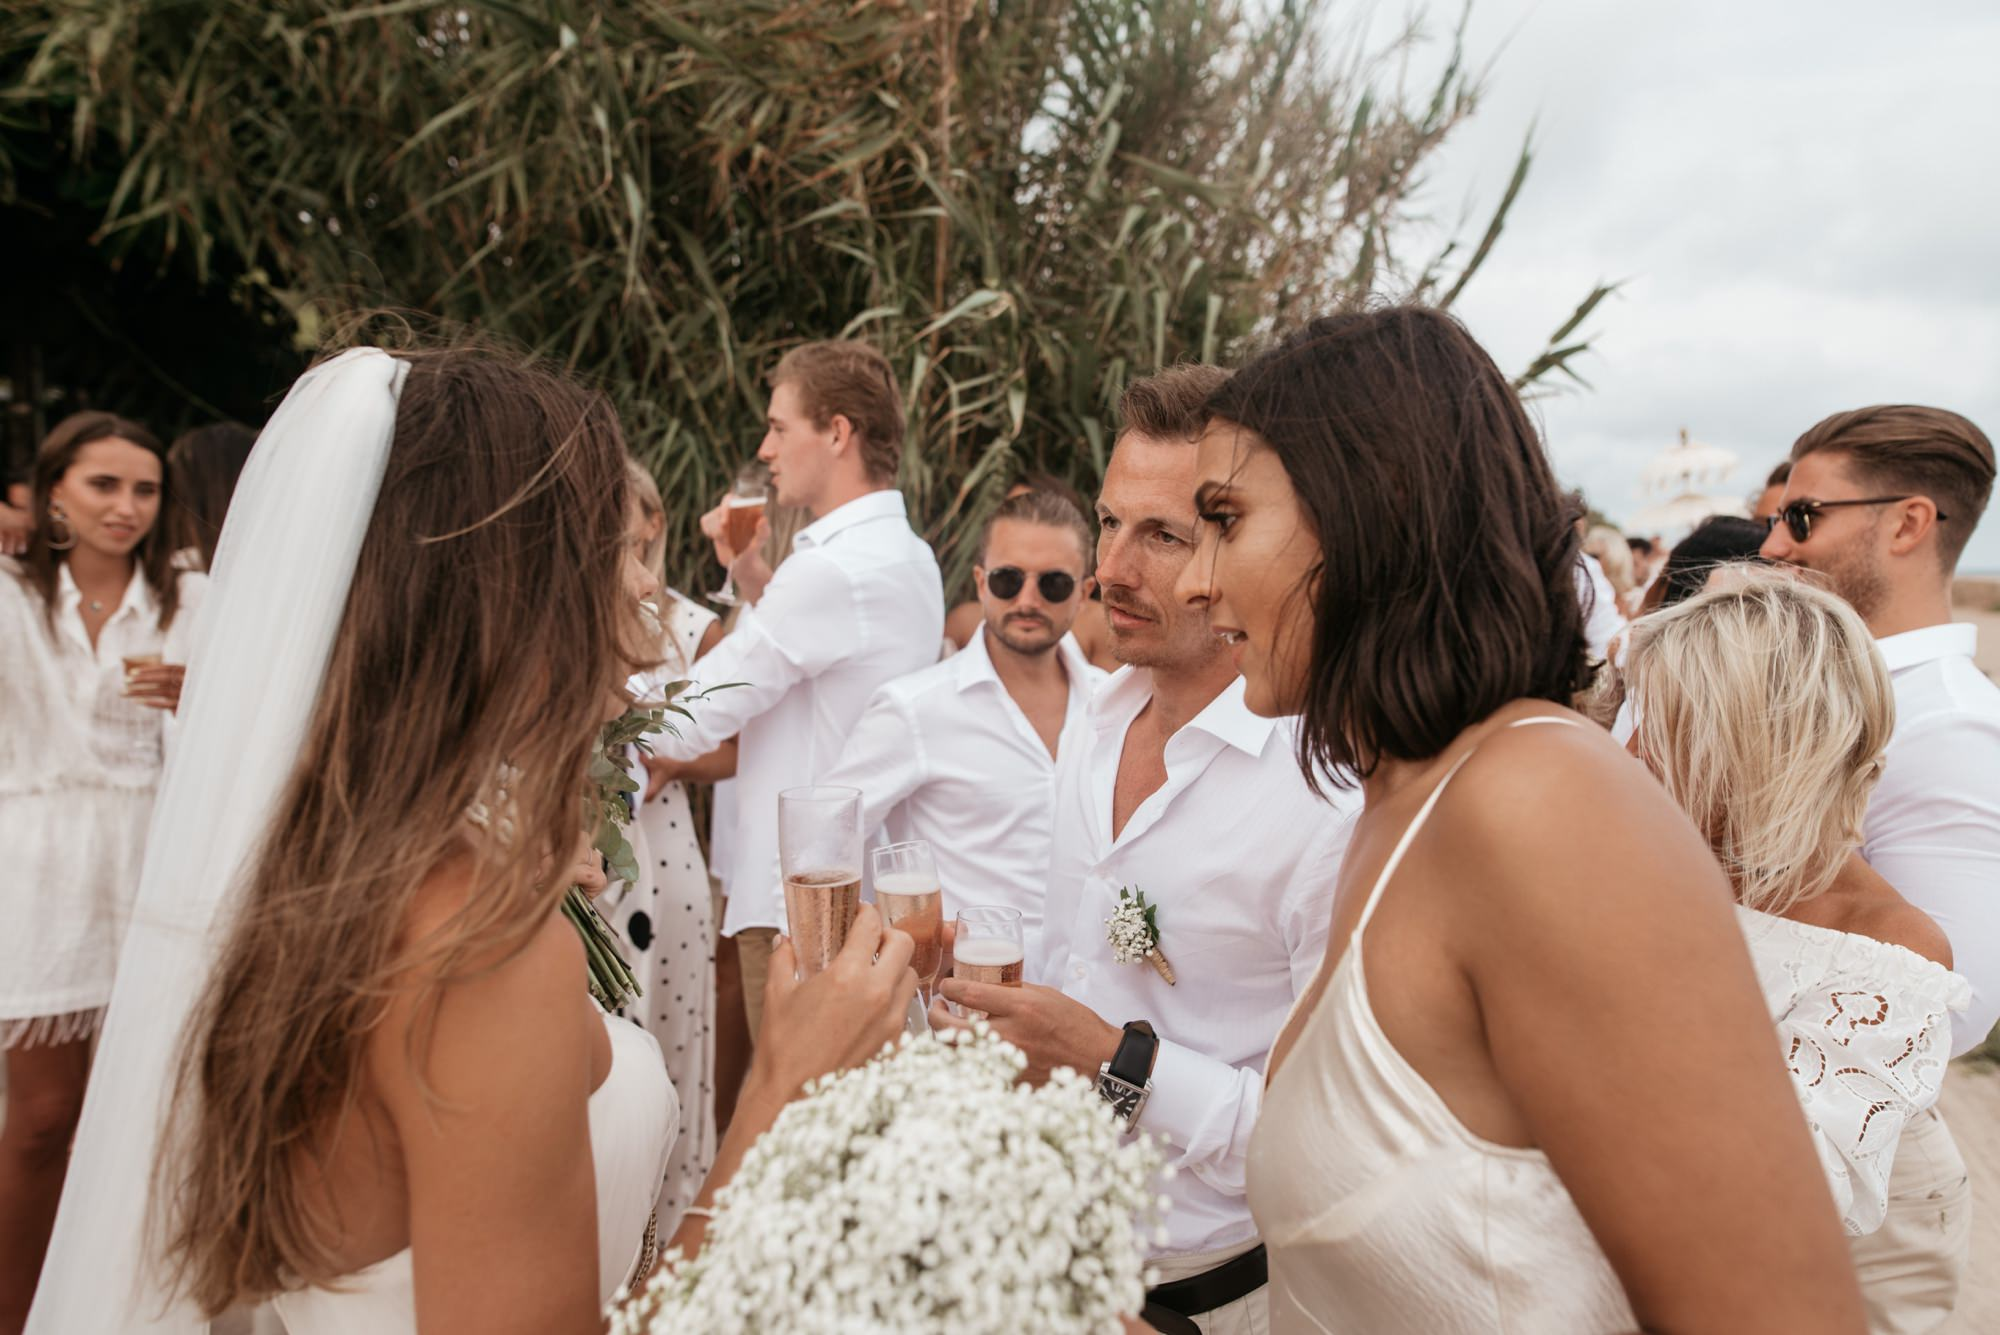 natural wedding photo destination la escollera ibiza 0078 1